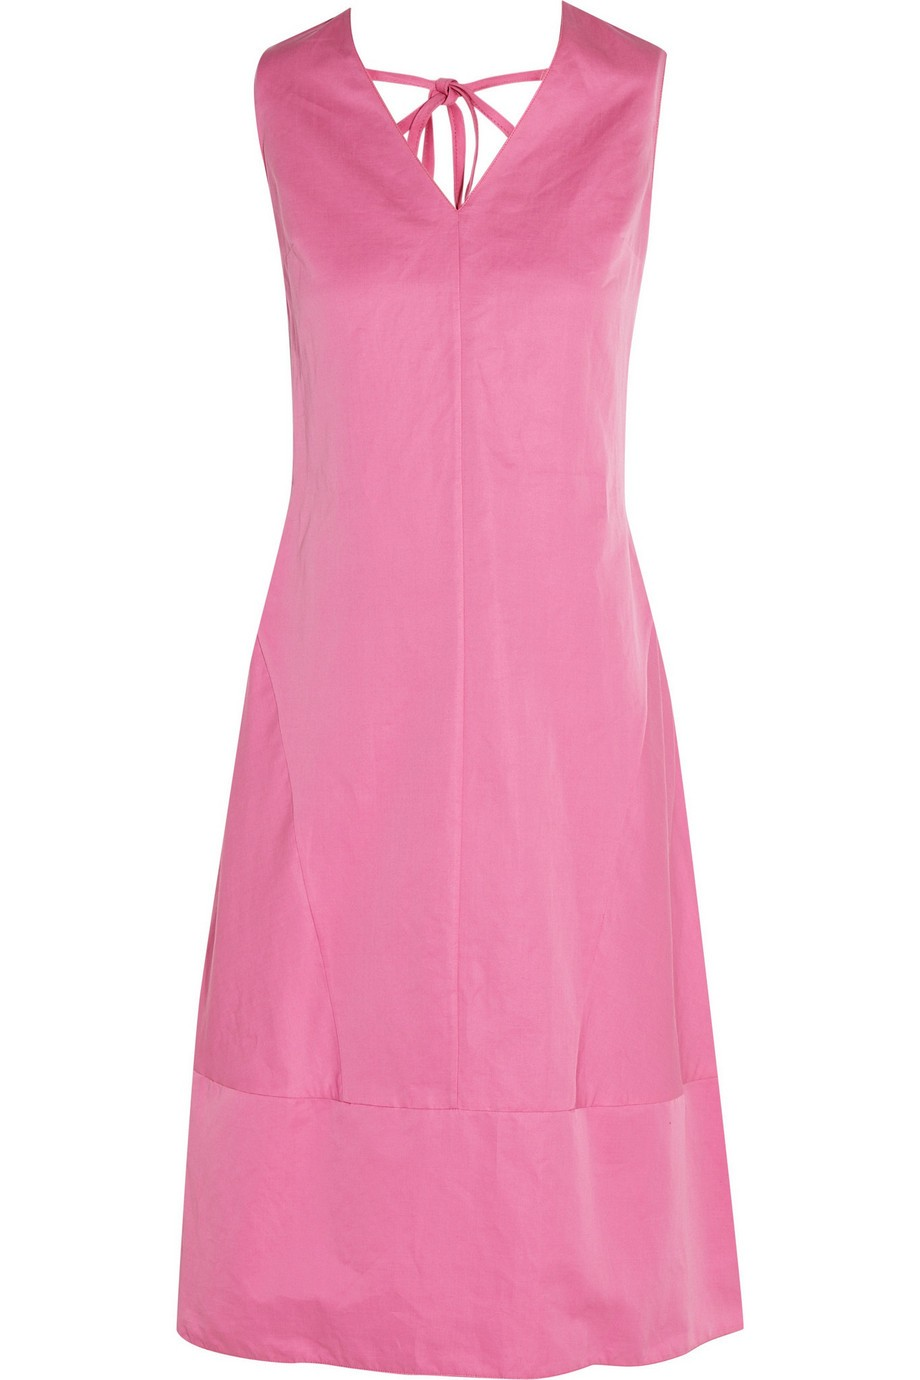 Cotton and ramie-blend dress